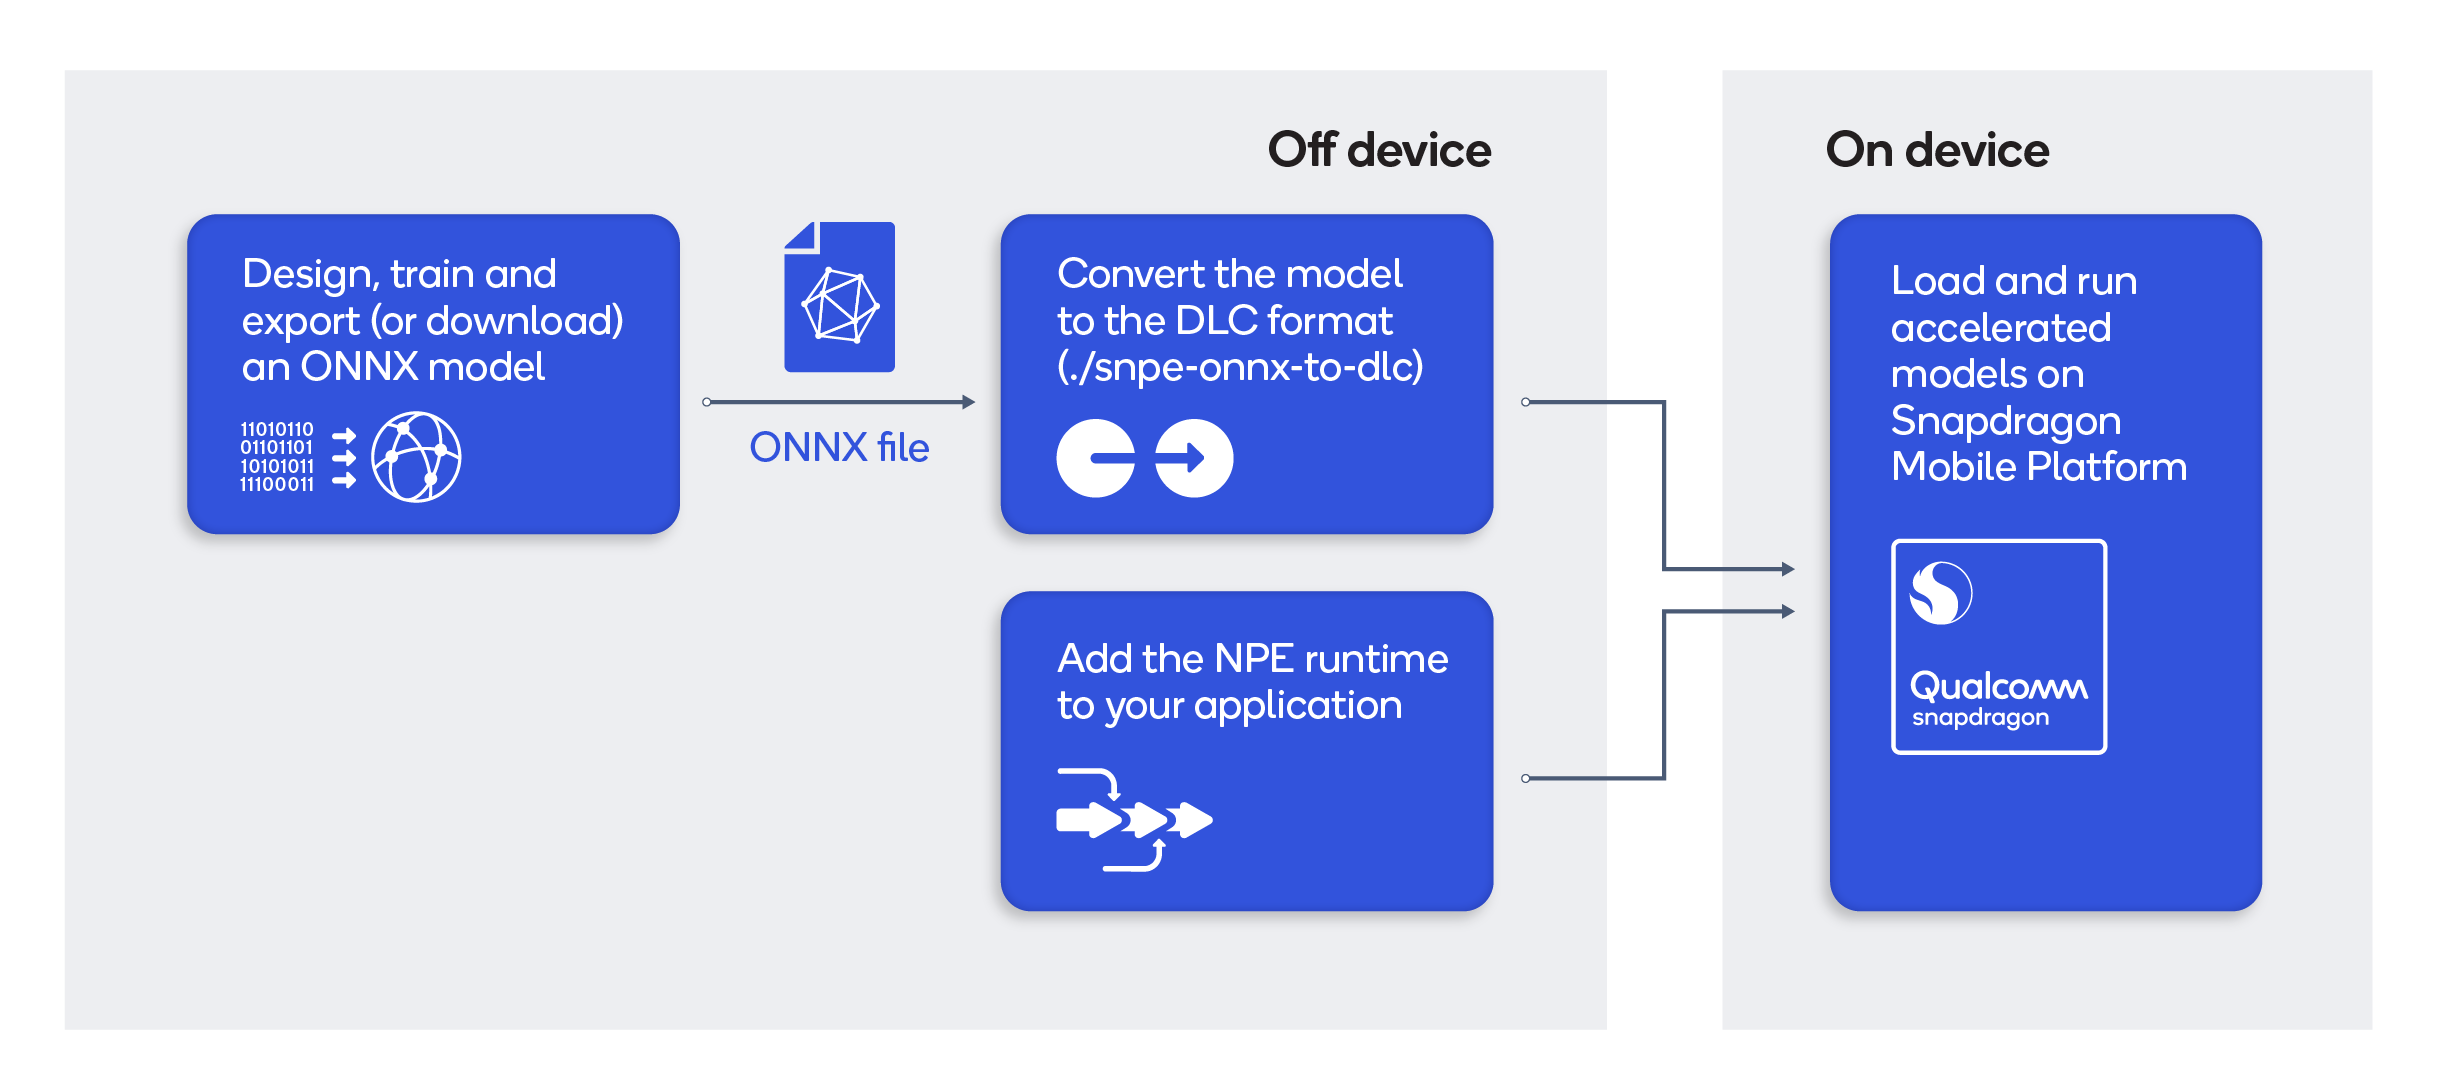 Run your ONNX AI Models Faster on Snapdragon - Qualcomm